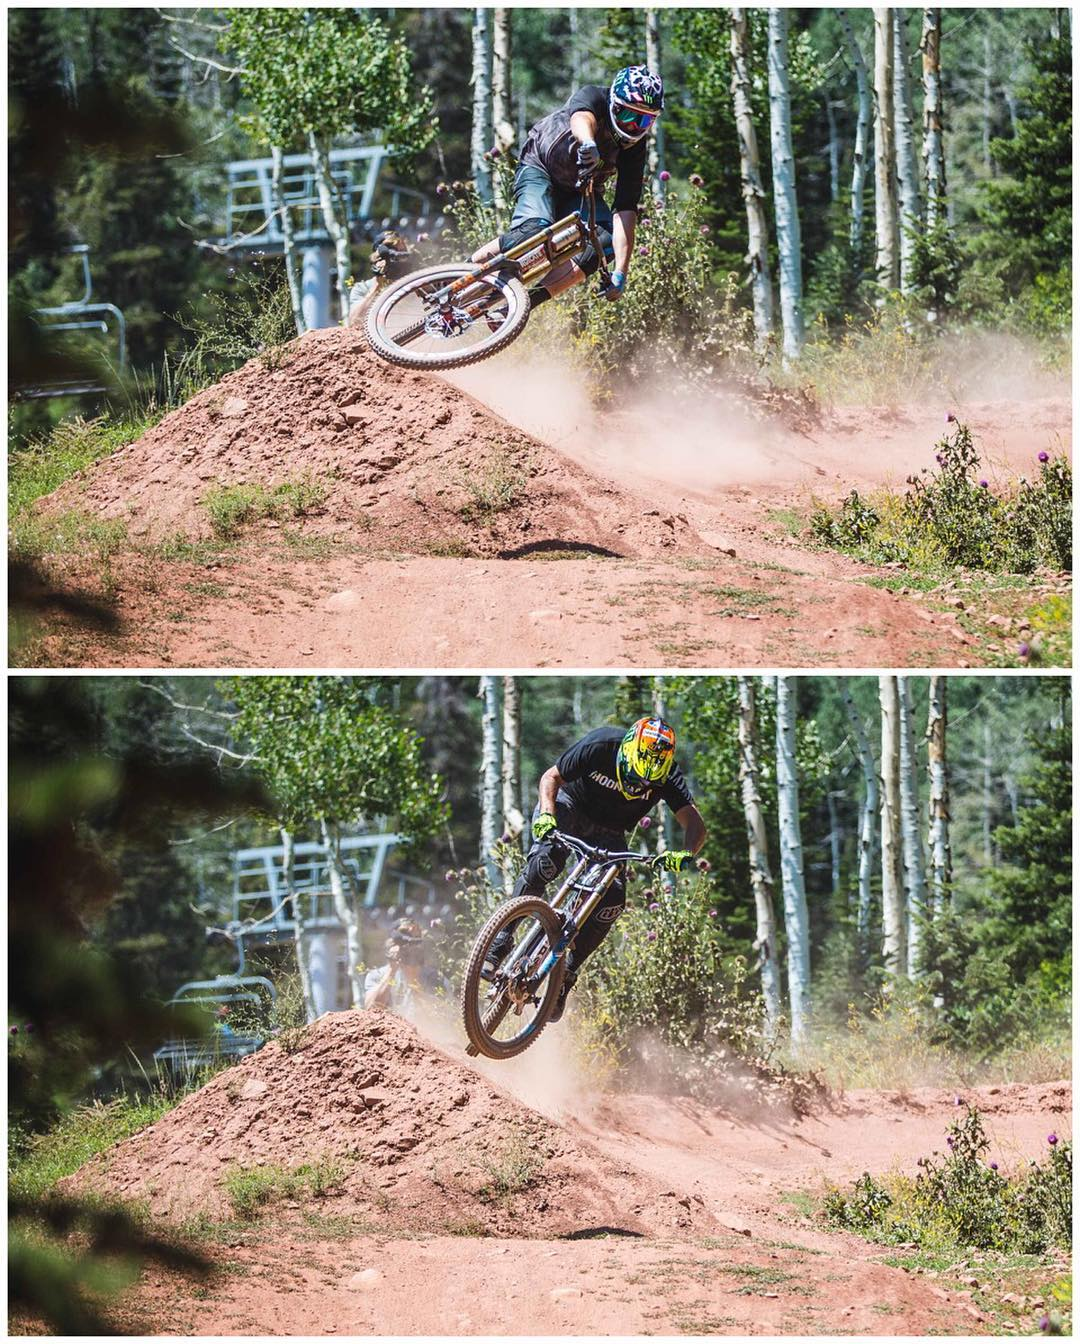 Comparison time: @StevePeat (top) and yours truly (bottom) on the same cambered corner on the Rally Cat trail here at The Canyons in Park City. Just kidding - there's no real comparison, ha. Peaty's a world class pro, and I'm just a racecar driver...